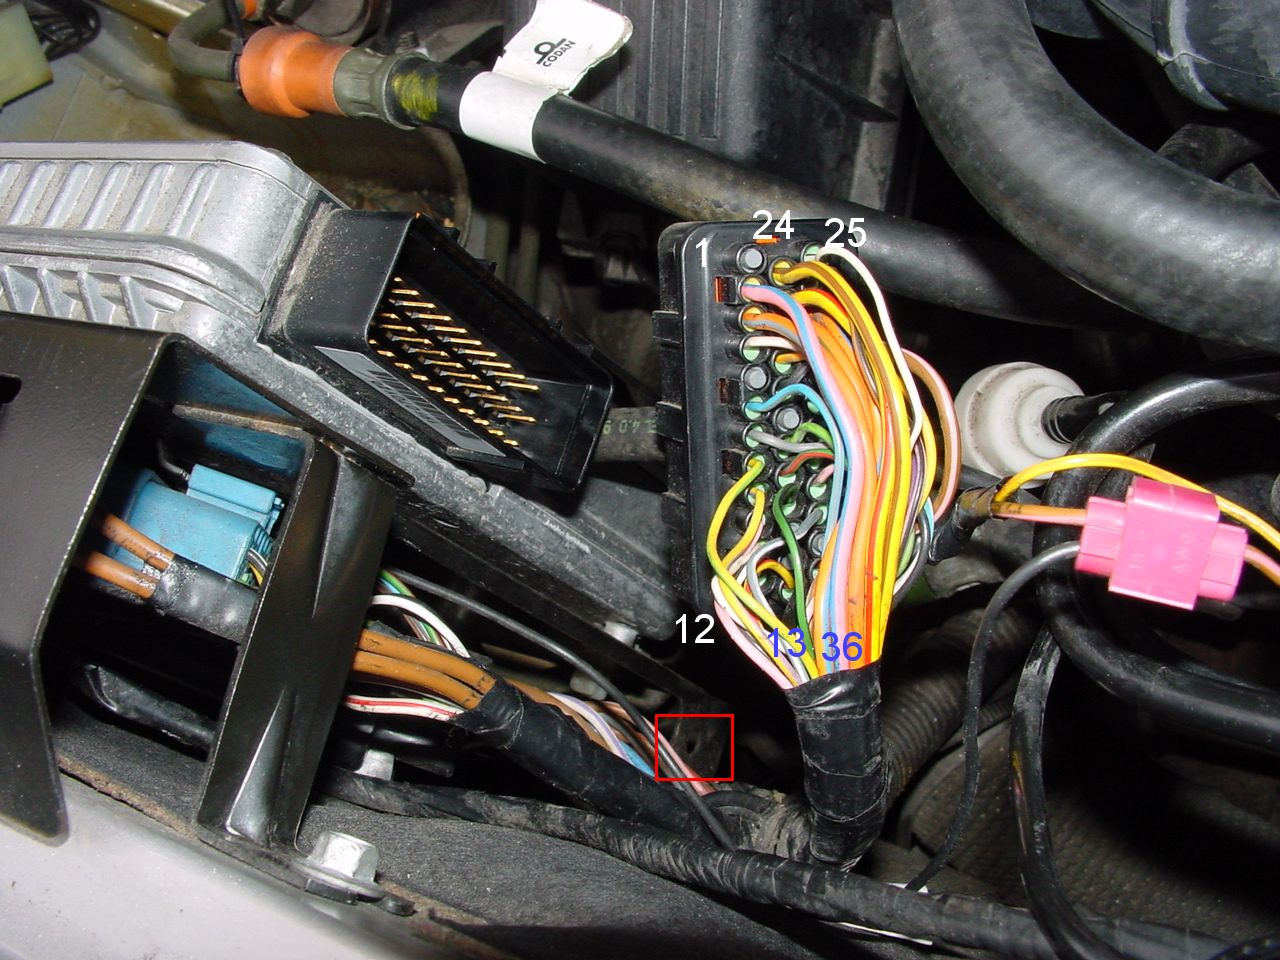 Engine Management Basics as well US20040093076 further US20110054333 also Index2 together with Evolution Lvdt Linear Position Sensors. on mems coil